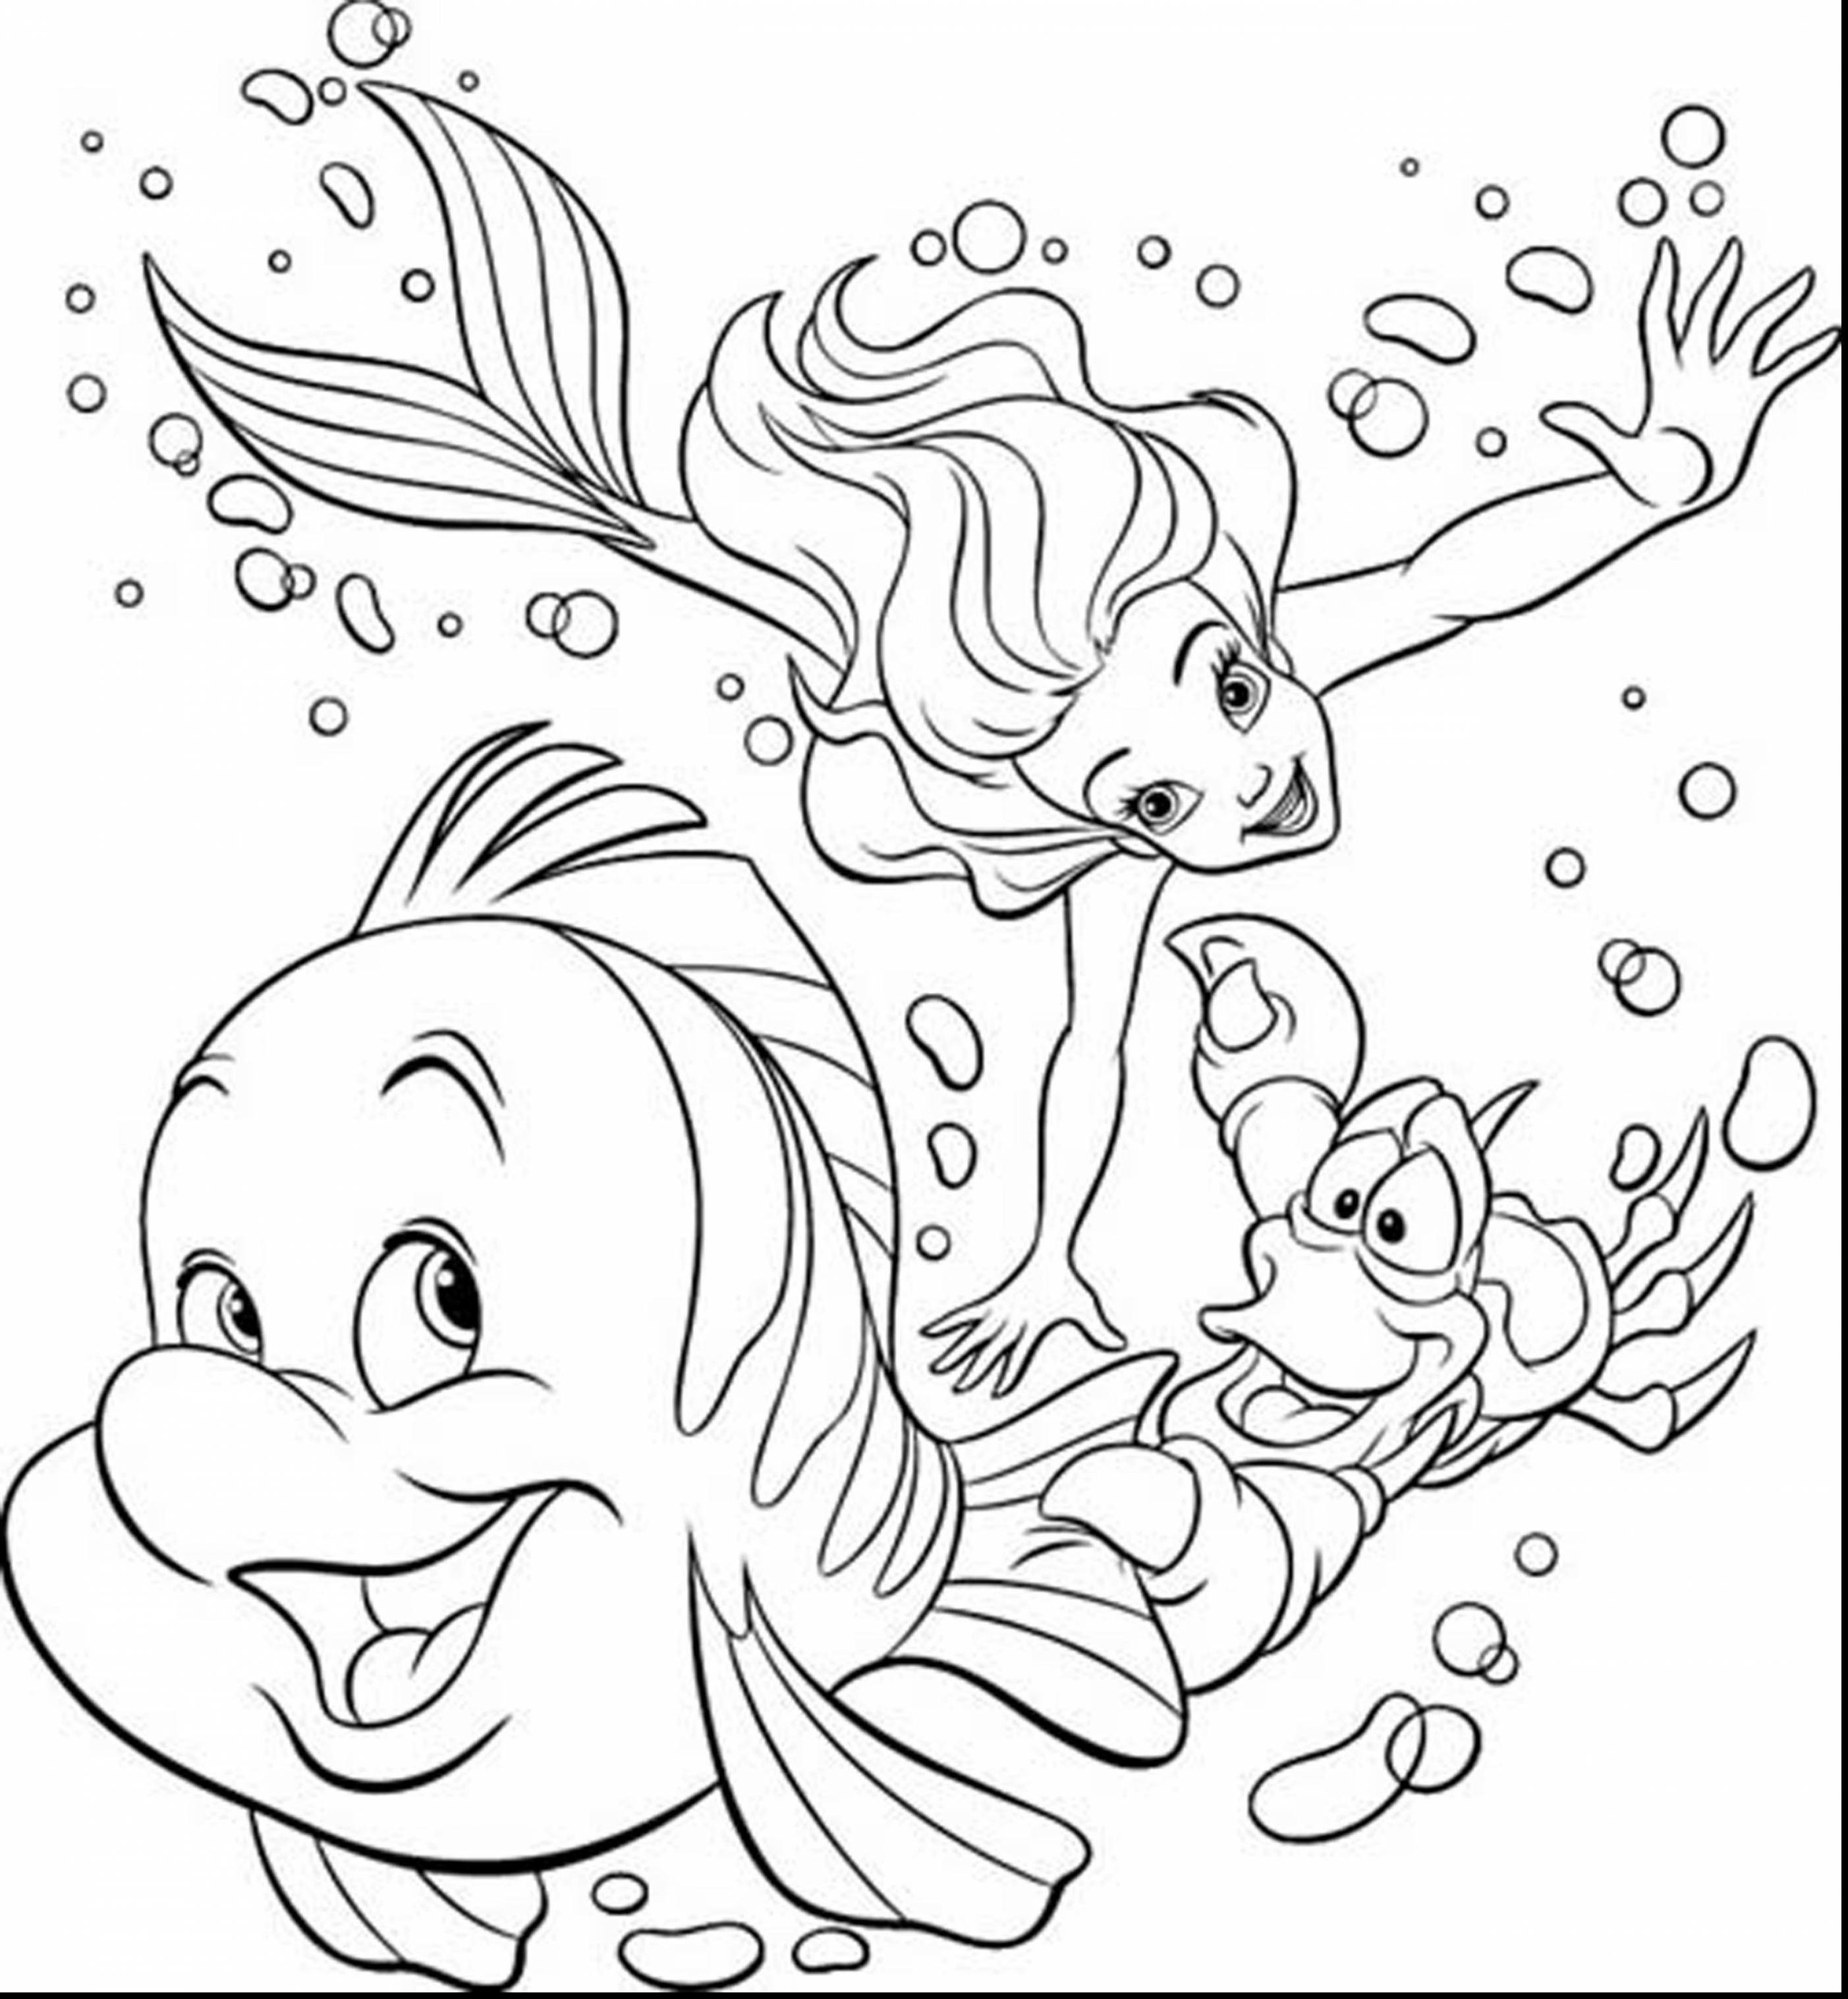 Free Coloring Pages For Girls Disney At Getdrawings Free Download